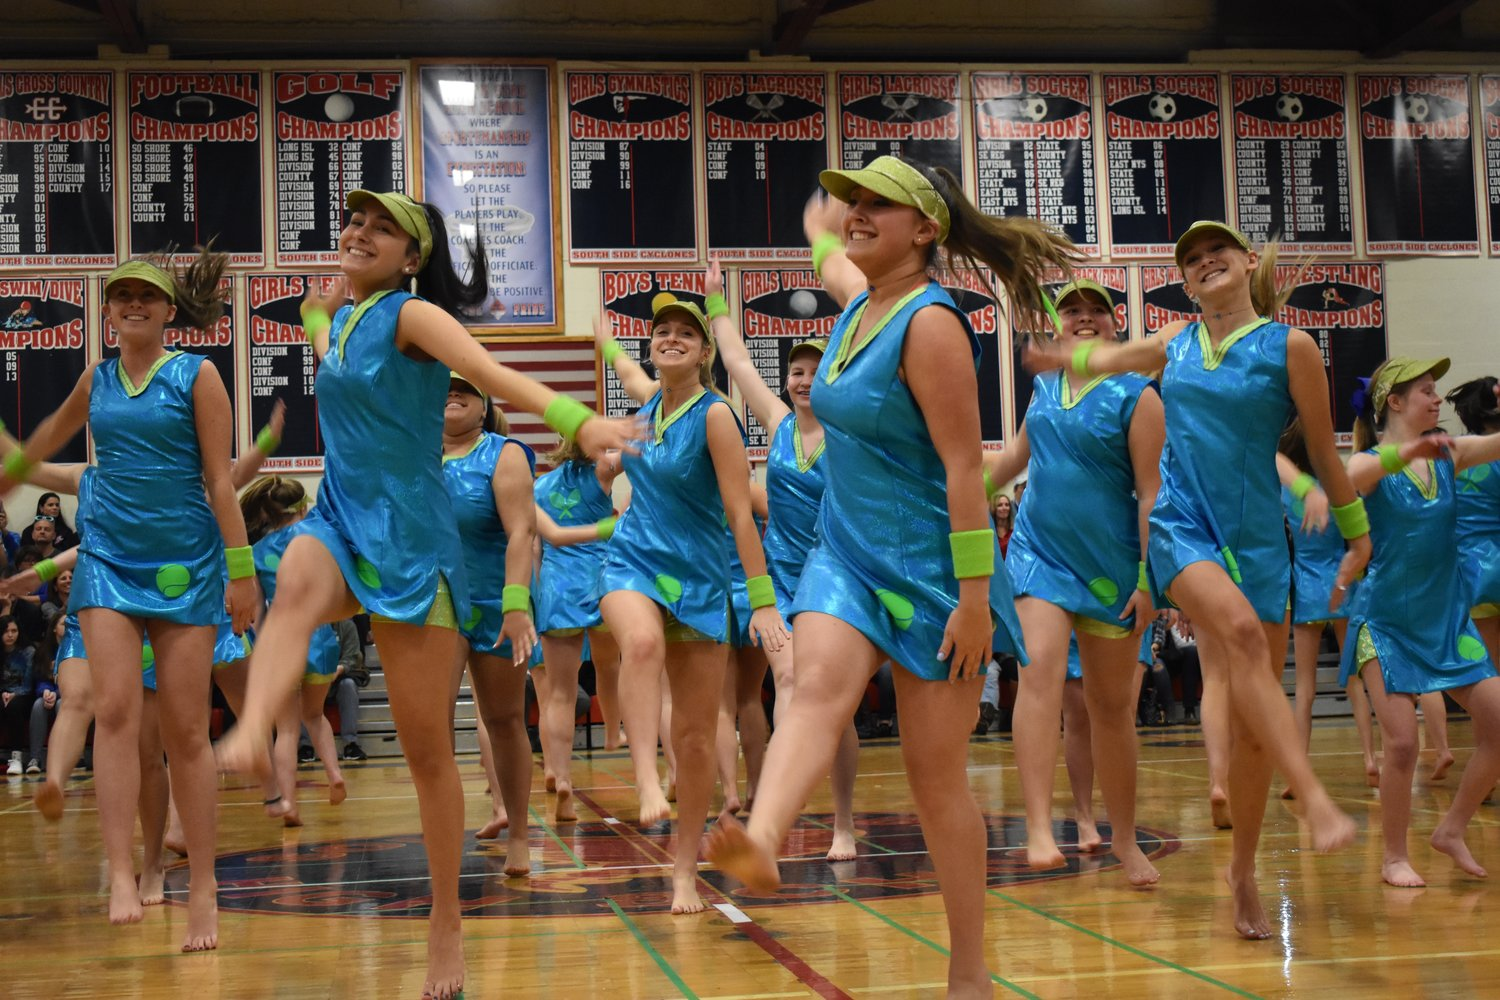 Blue dancers dressed as tennis players for one of their routines.